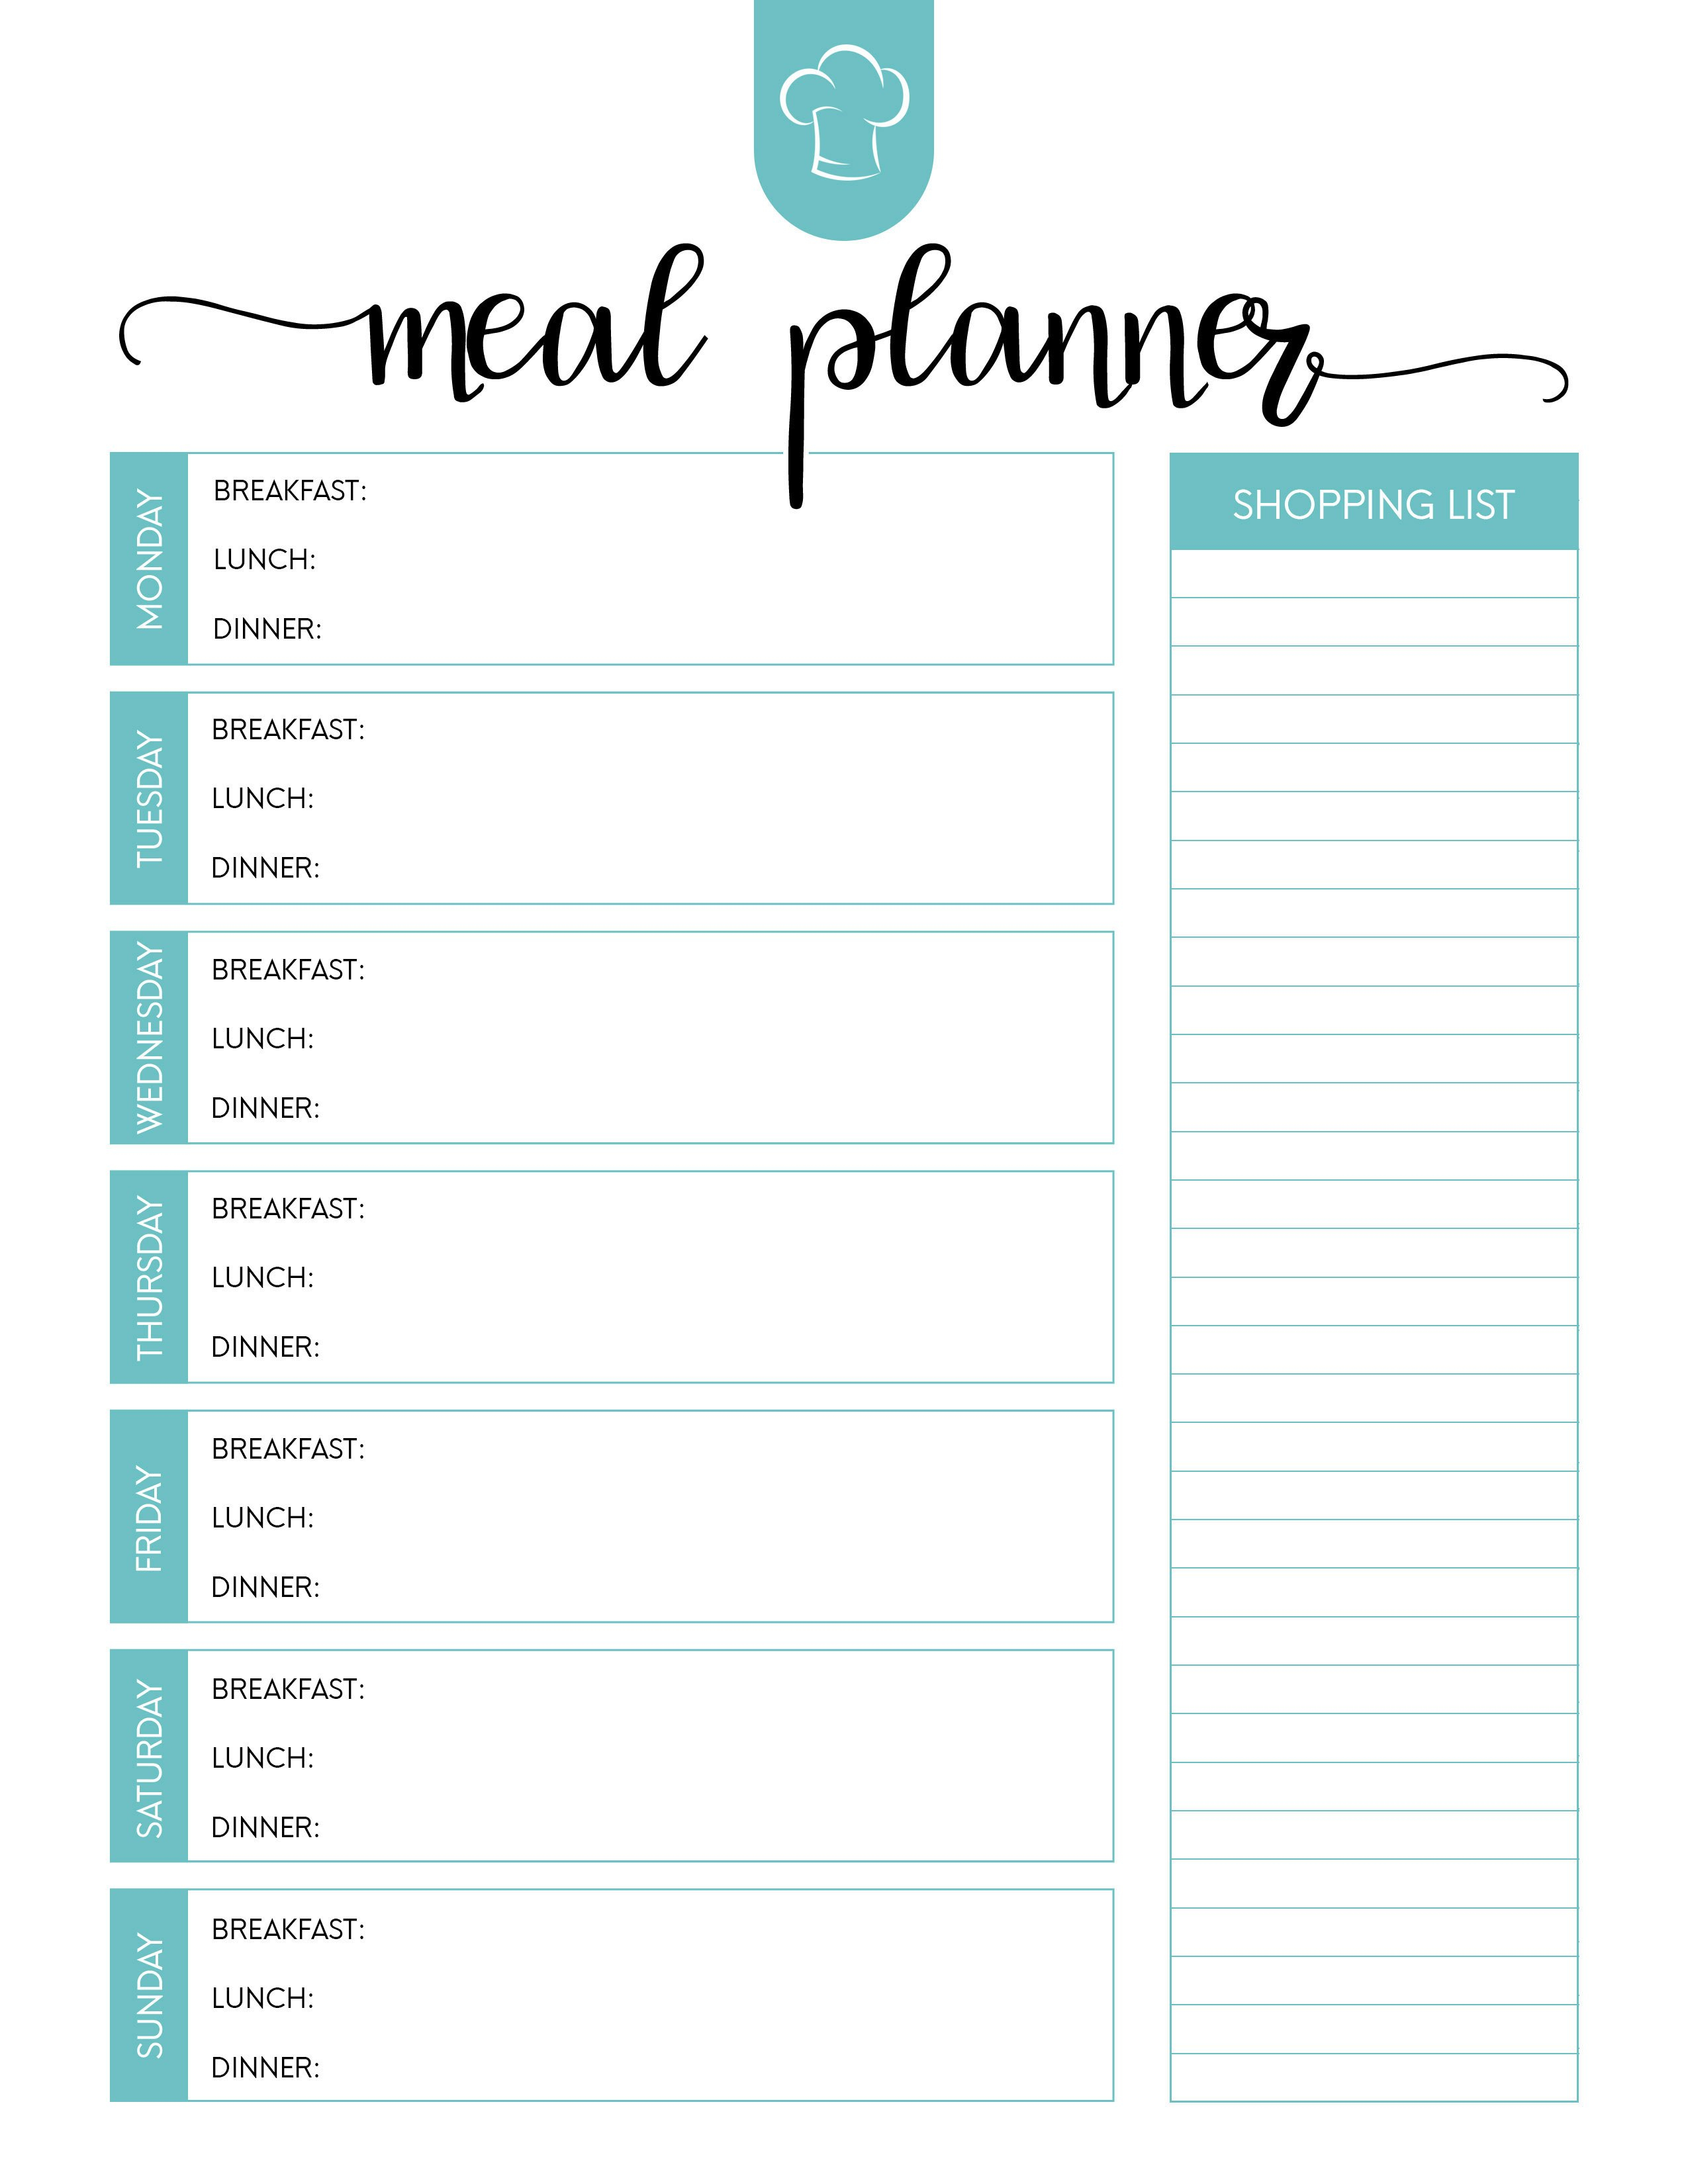 Free Printable Meal Planner Set  The Cottage Market Inside Weekly Meal Planner Template Word